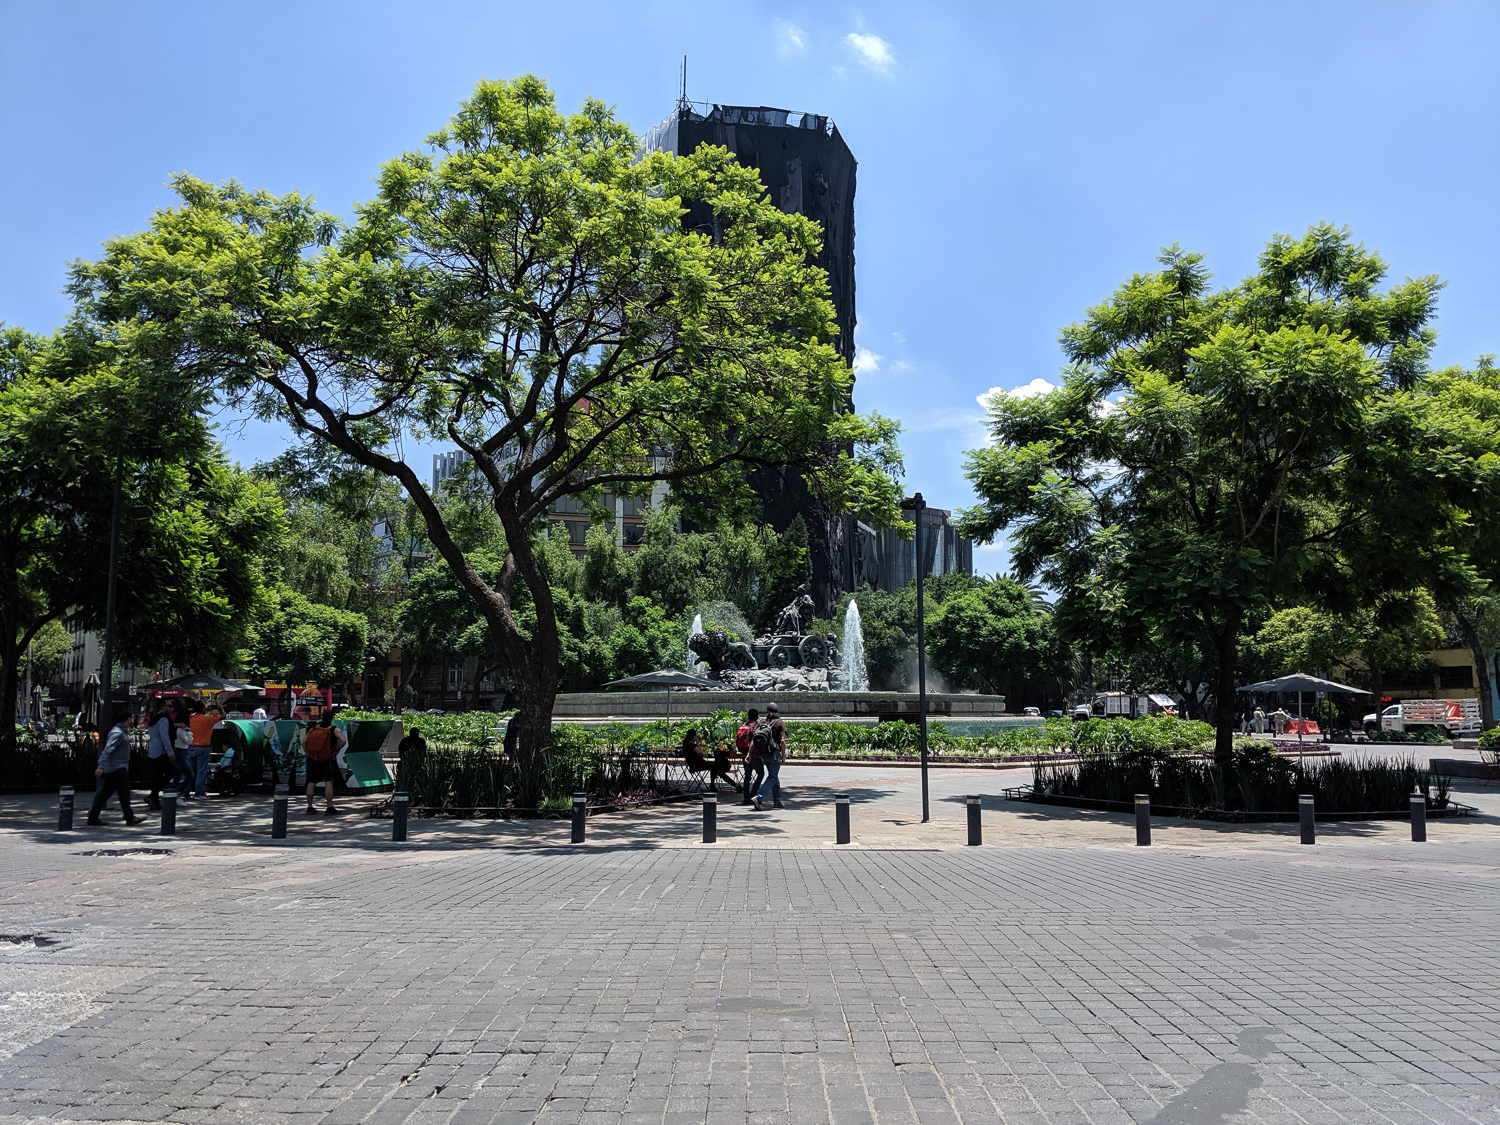 It wasn't just the public space itself, but also the use of it, specifically by street vendors. In CDMX, we found that there were highly regulated systems, both formally and informally. Marco translated a few conversations with vendors in Chapultepec Park.